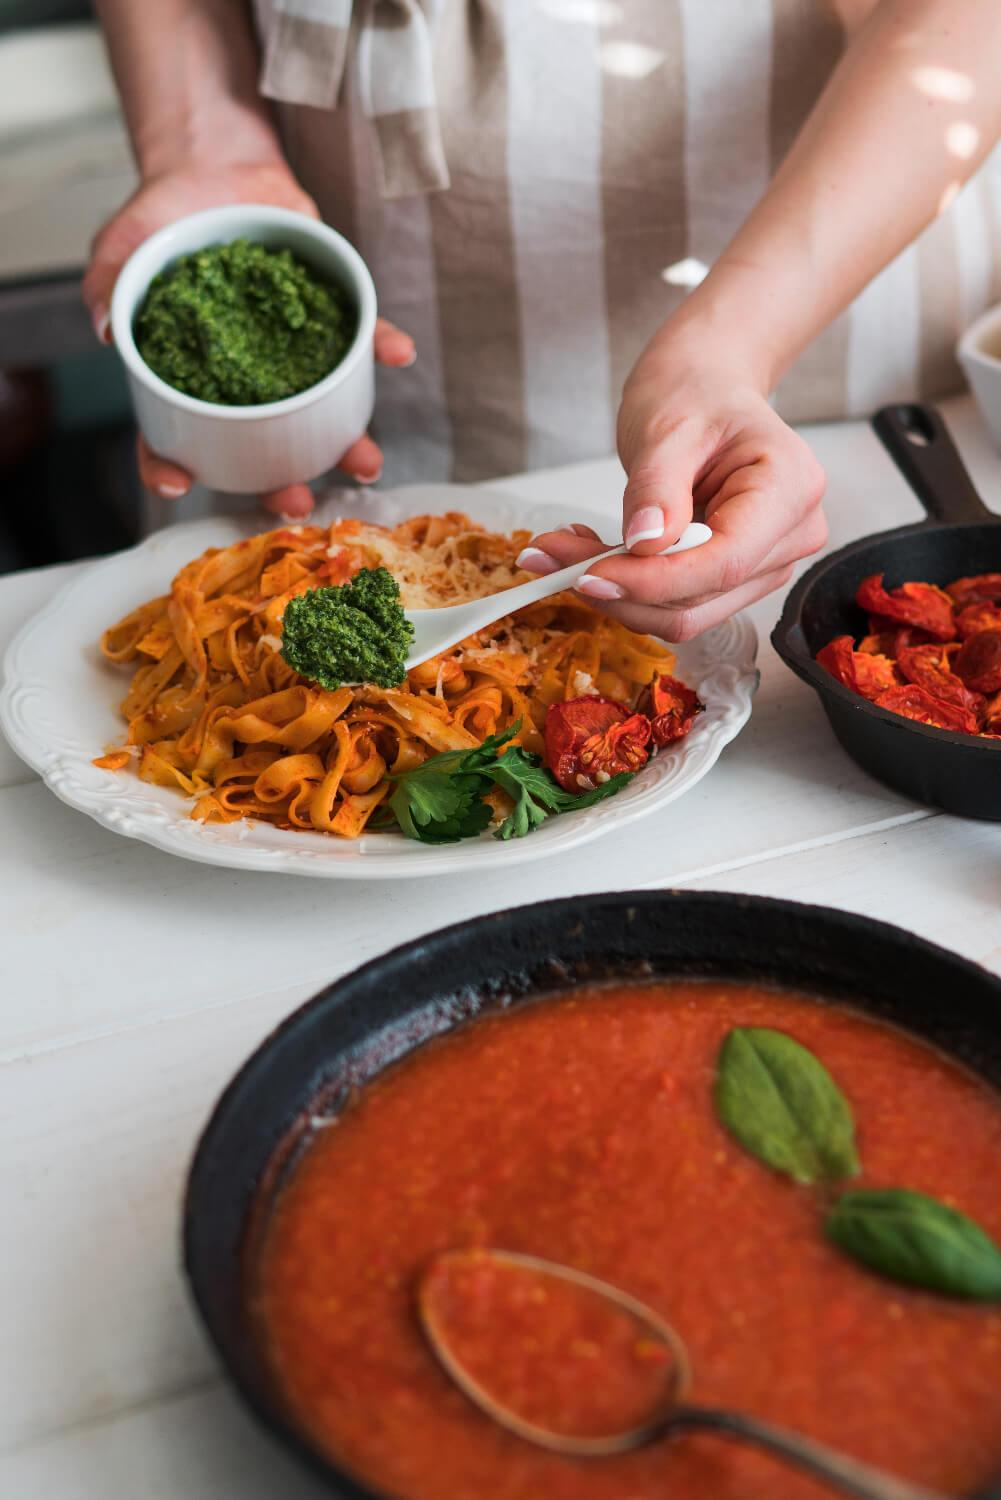 WEIKFIELD PASTA SAUCE IS YOUR QUINTESSENTIAL FLAVOURFUL SAUCE THAT ADDS TO THE AUTHENTIC PASTA EXPERIENCE